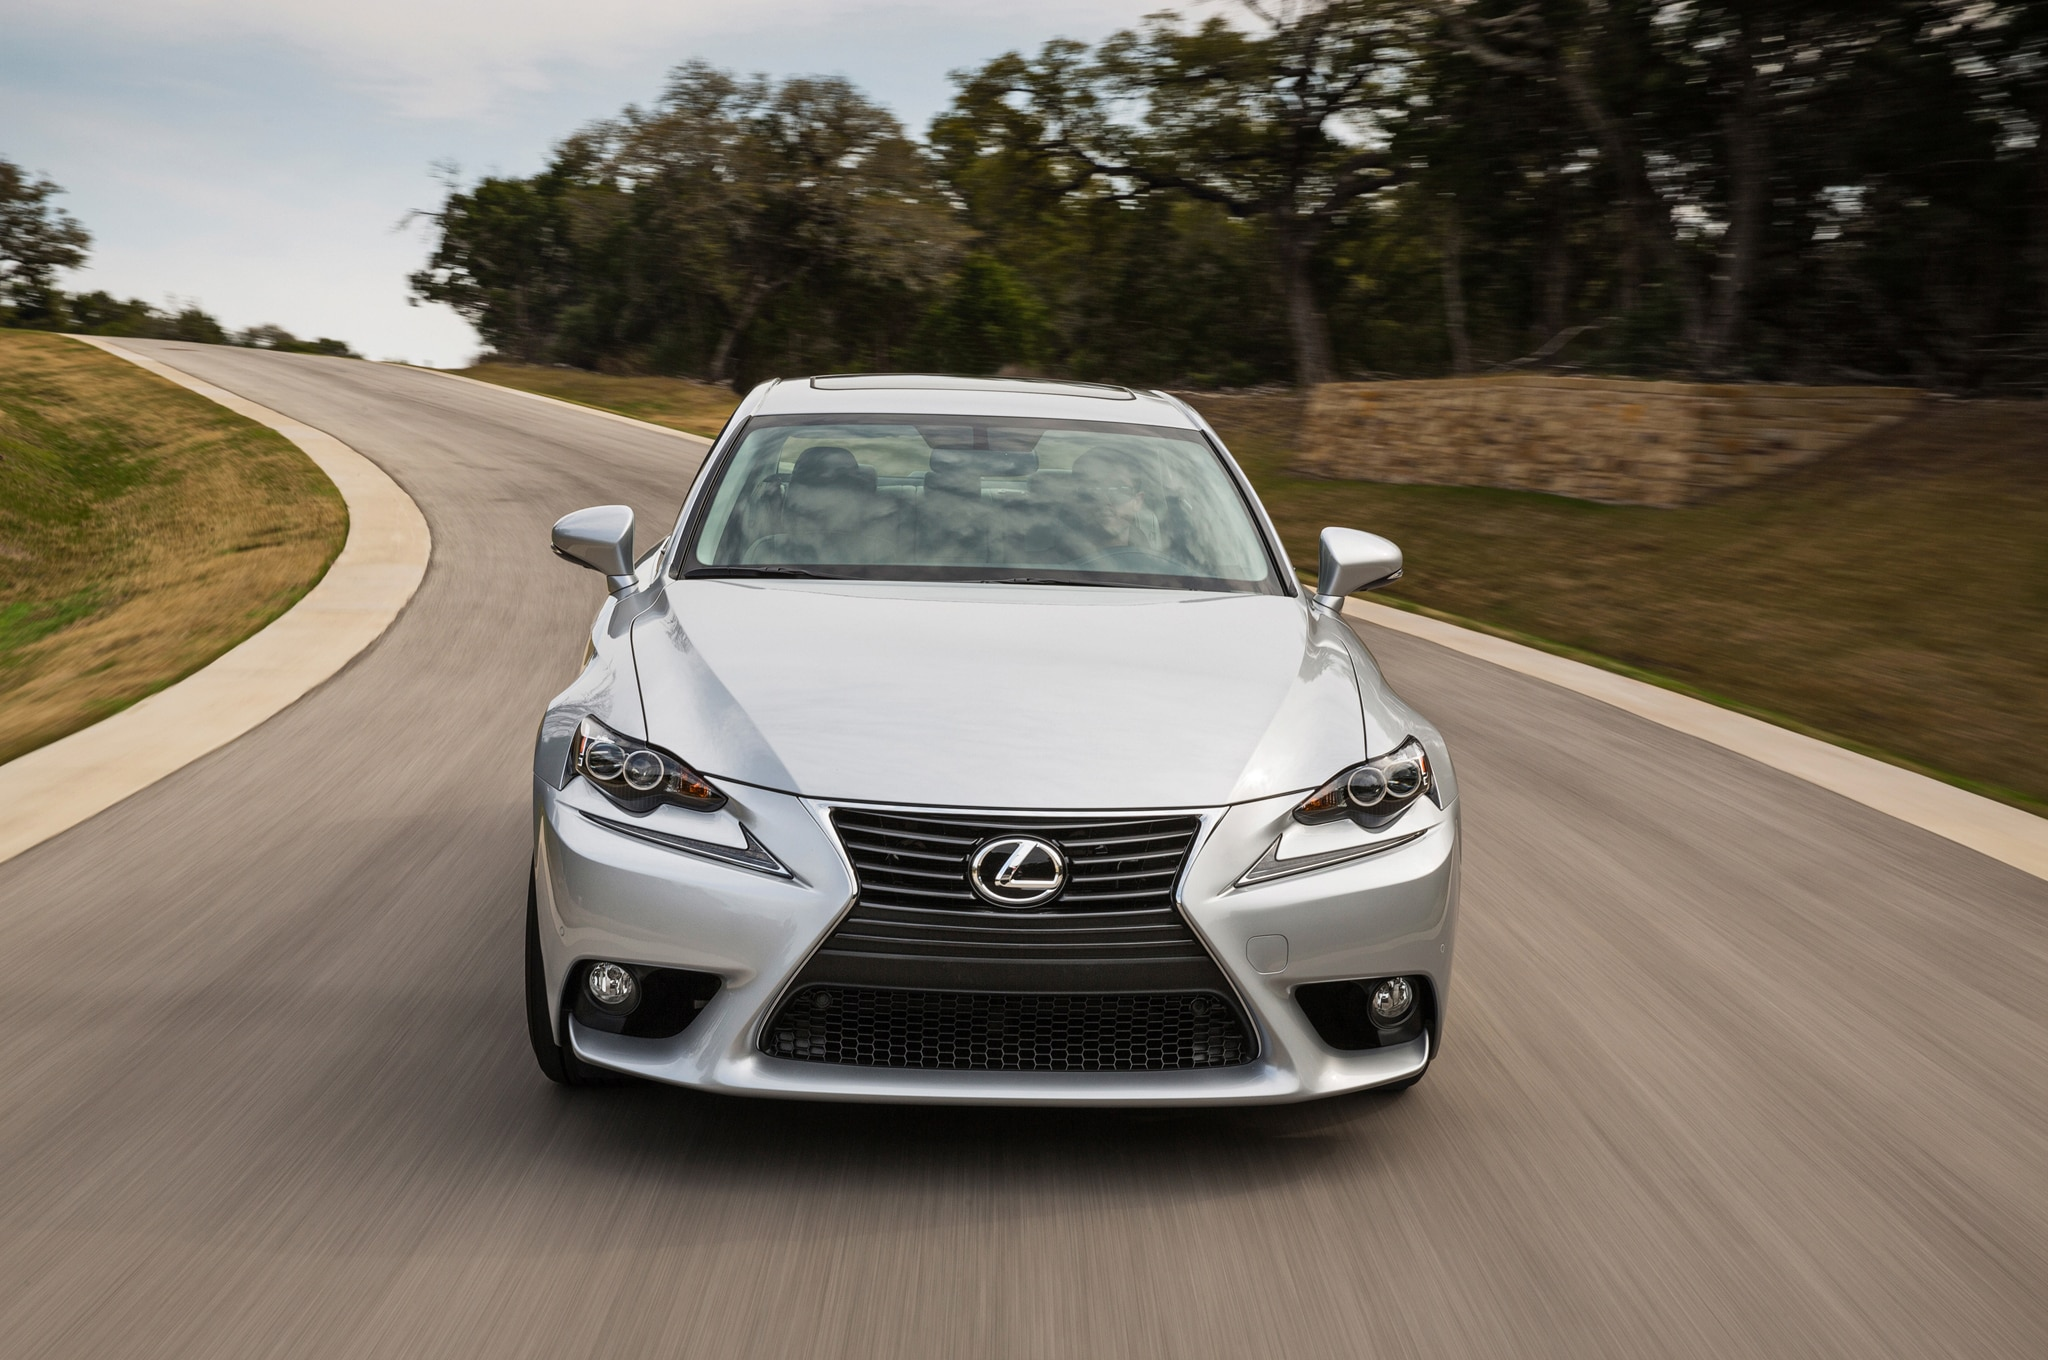 2014 Lexus IS 250 Front